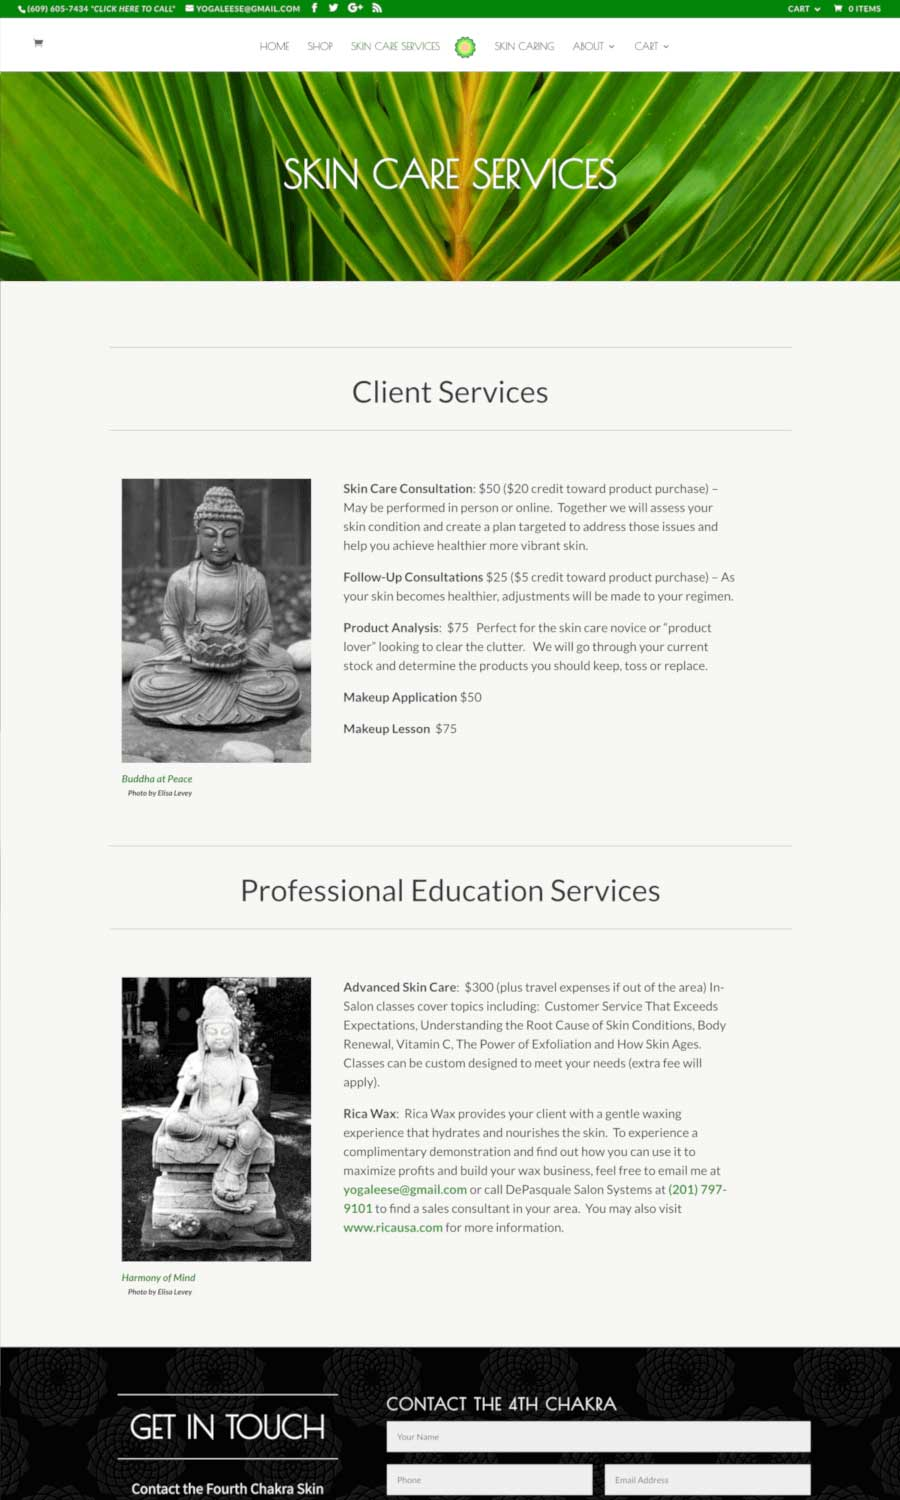 The Fourth Chakra Services Page